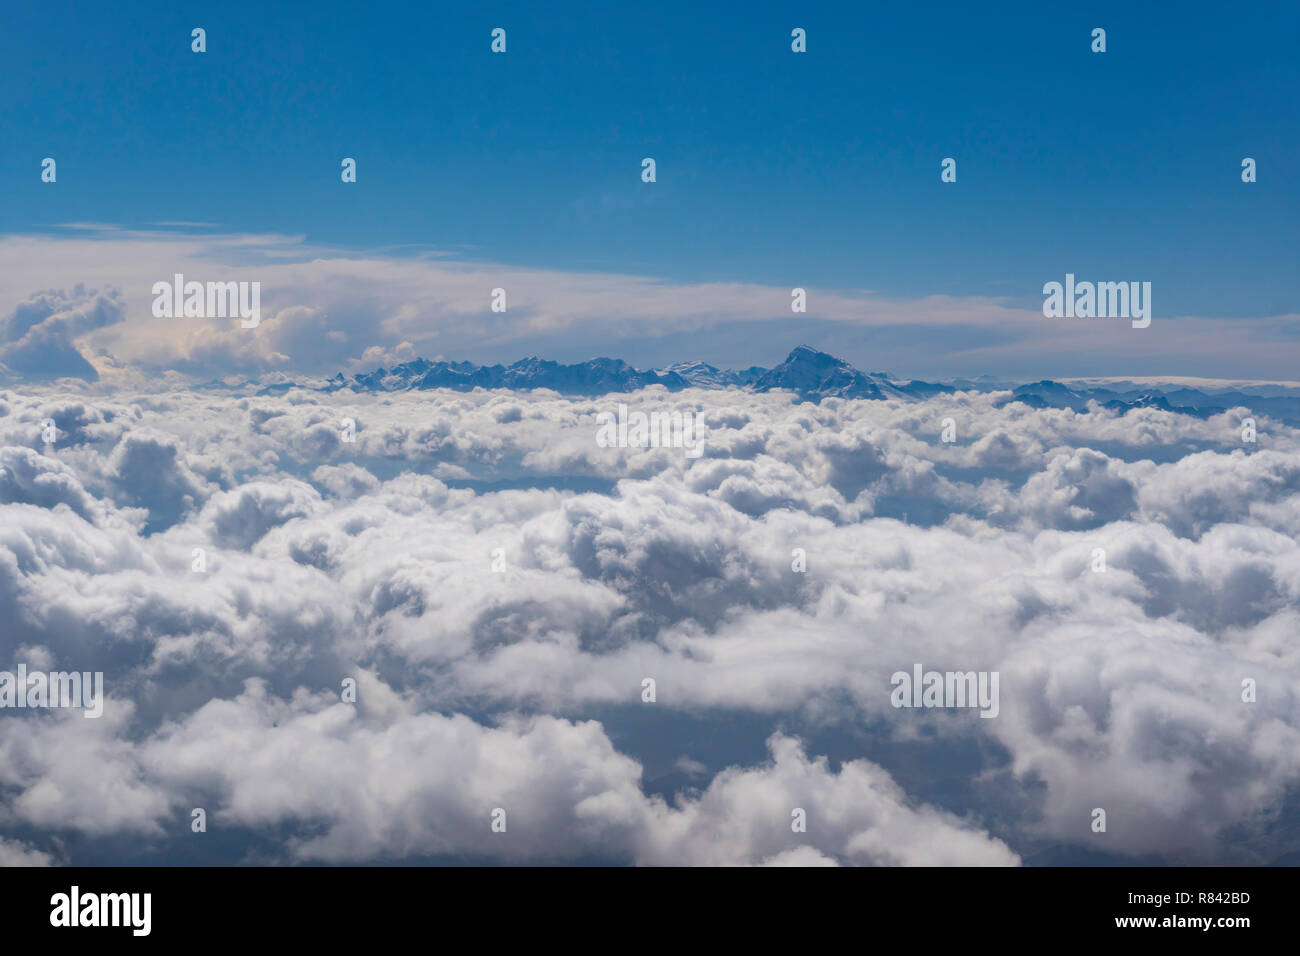 Mountain peaks above clouds - Stock Image